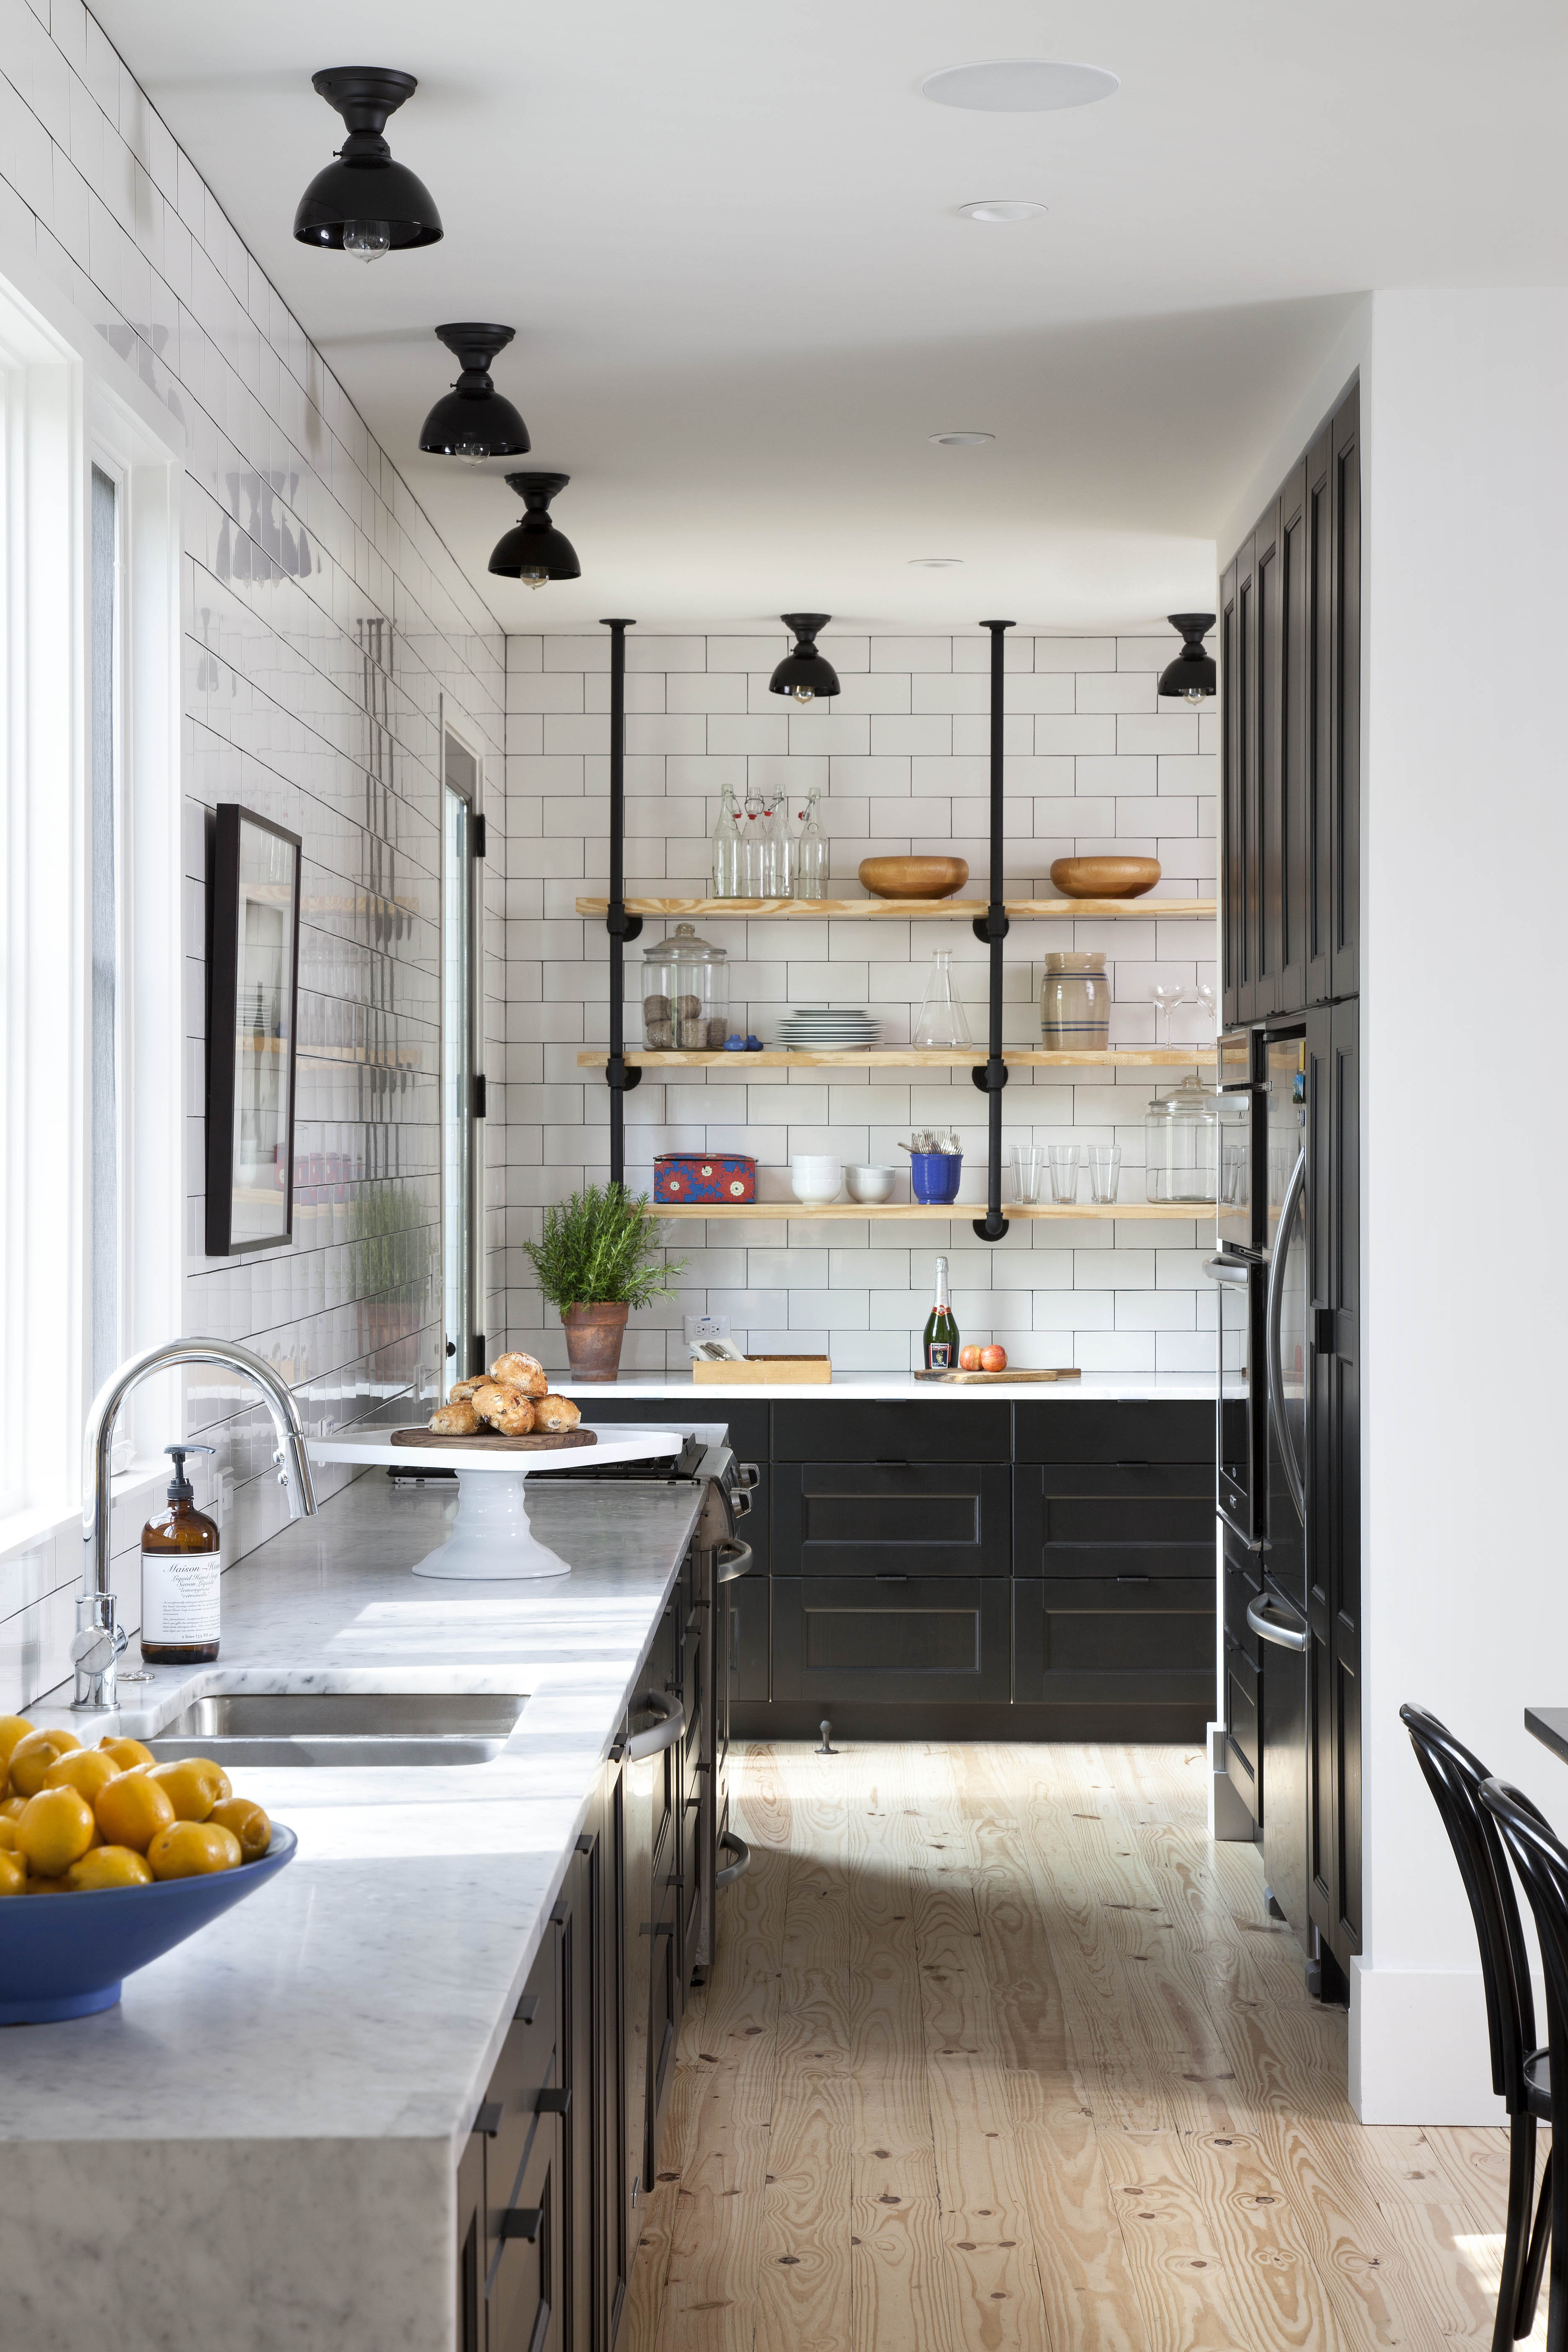 Modern kitchen with white subway tiles and black cabinets